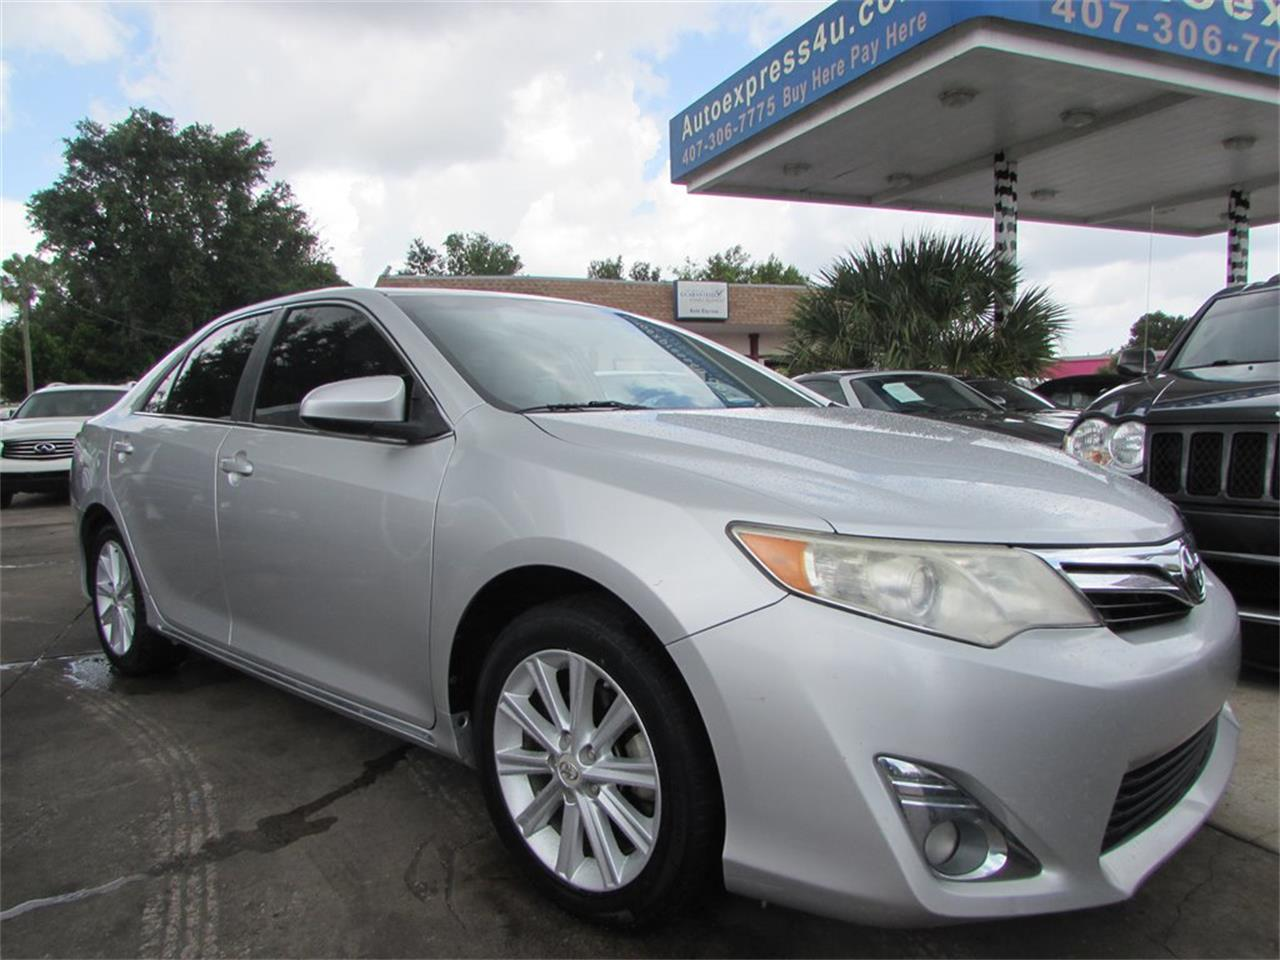 Large Picture of 2012 Camry located in Florida - $9,500.00 - QBF0